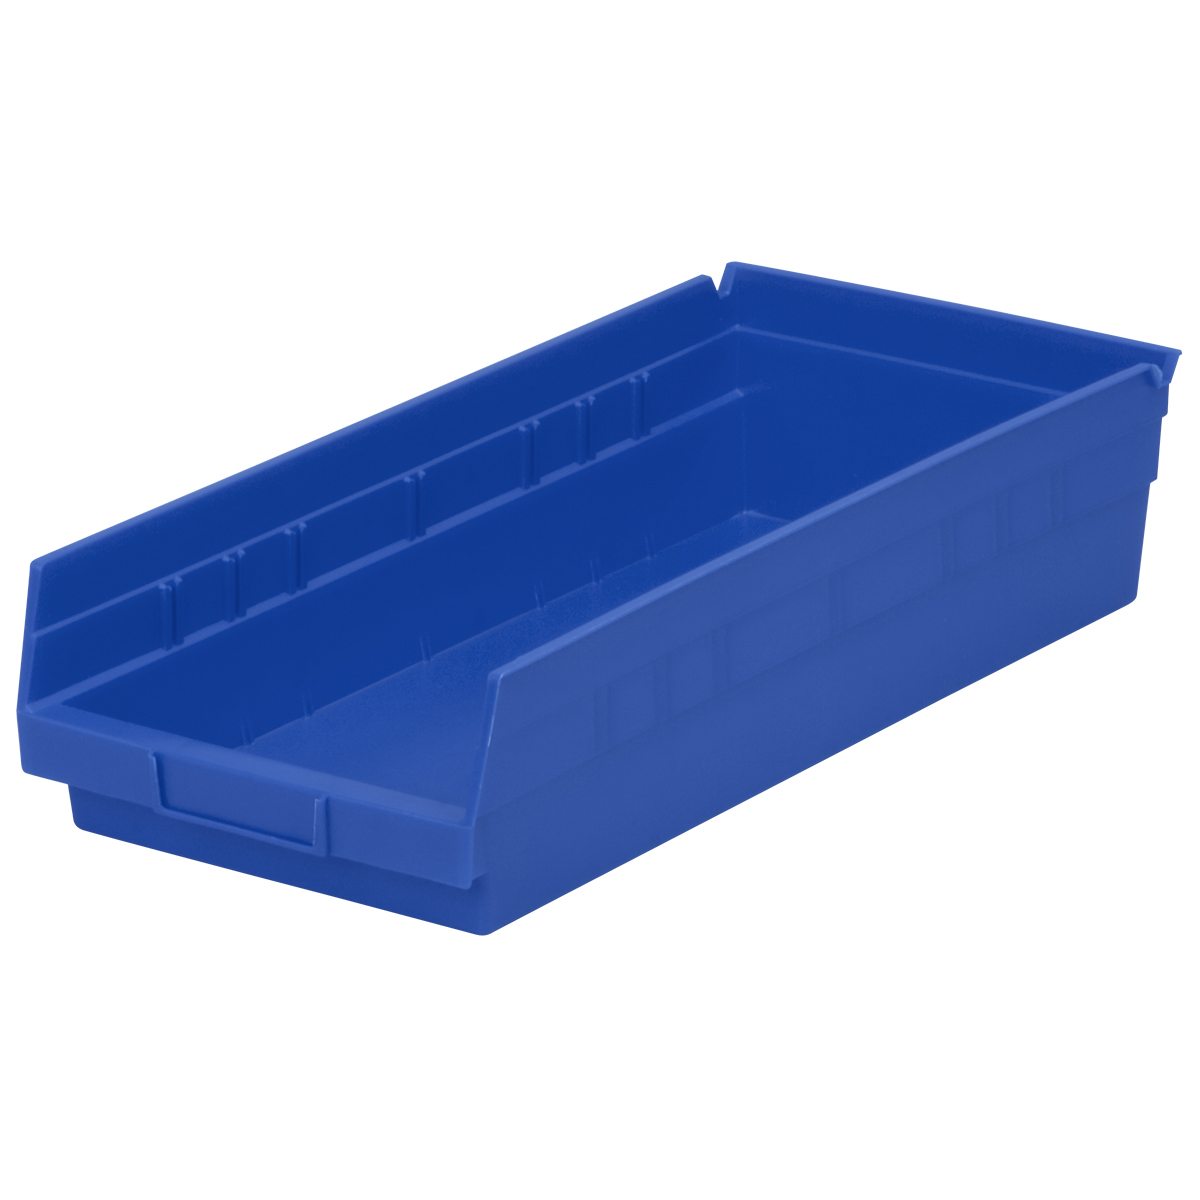 Shelf Bin 17-7/8 x 8-3/8 x 4, Blue (30158BLUE).  This item sold in carton quantities of 12.